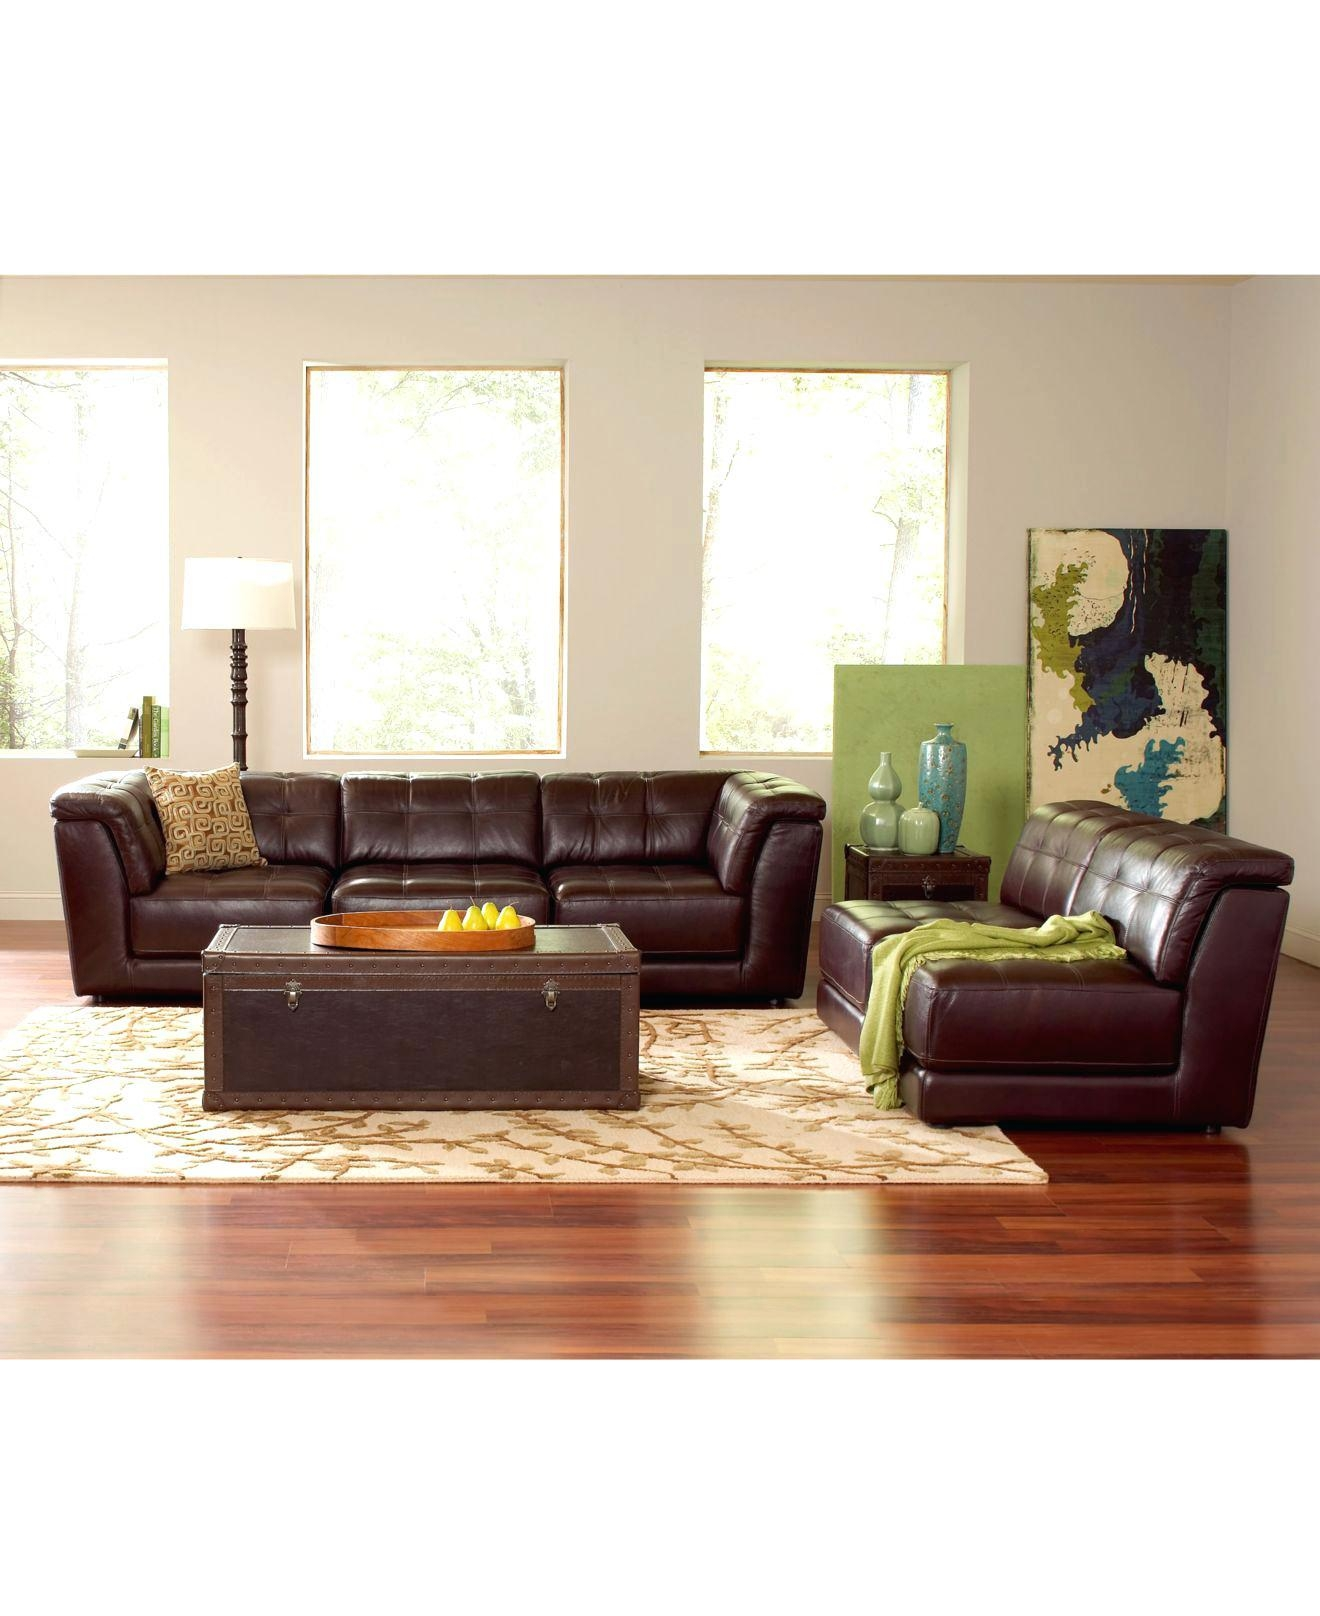 Ashley Sectional Leather Hercules Imagination Black 7 Piece In Stacey Leather Sectional (Image 1 of 20)